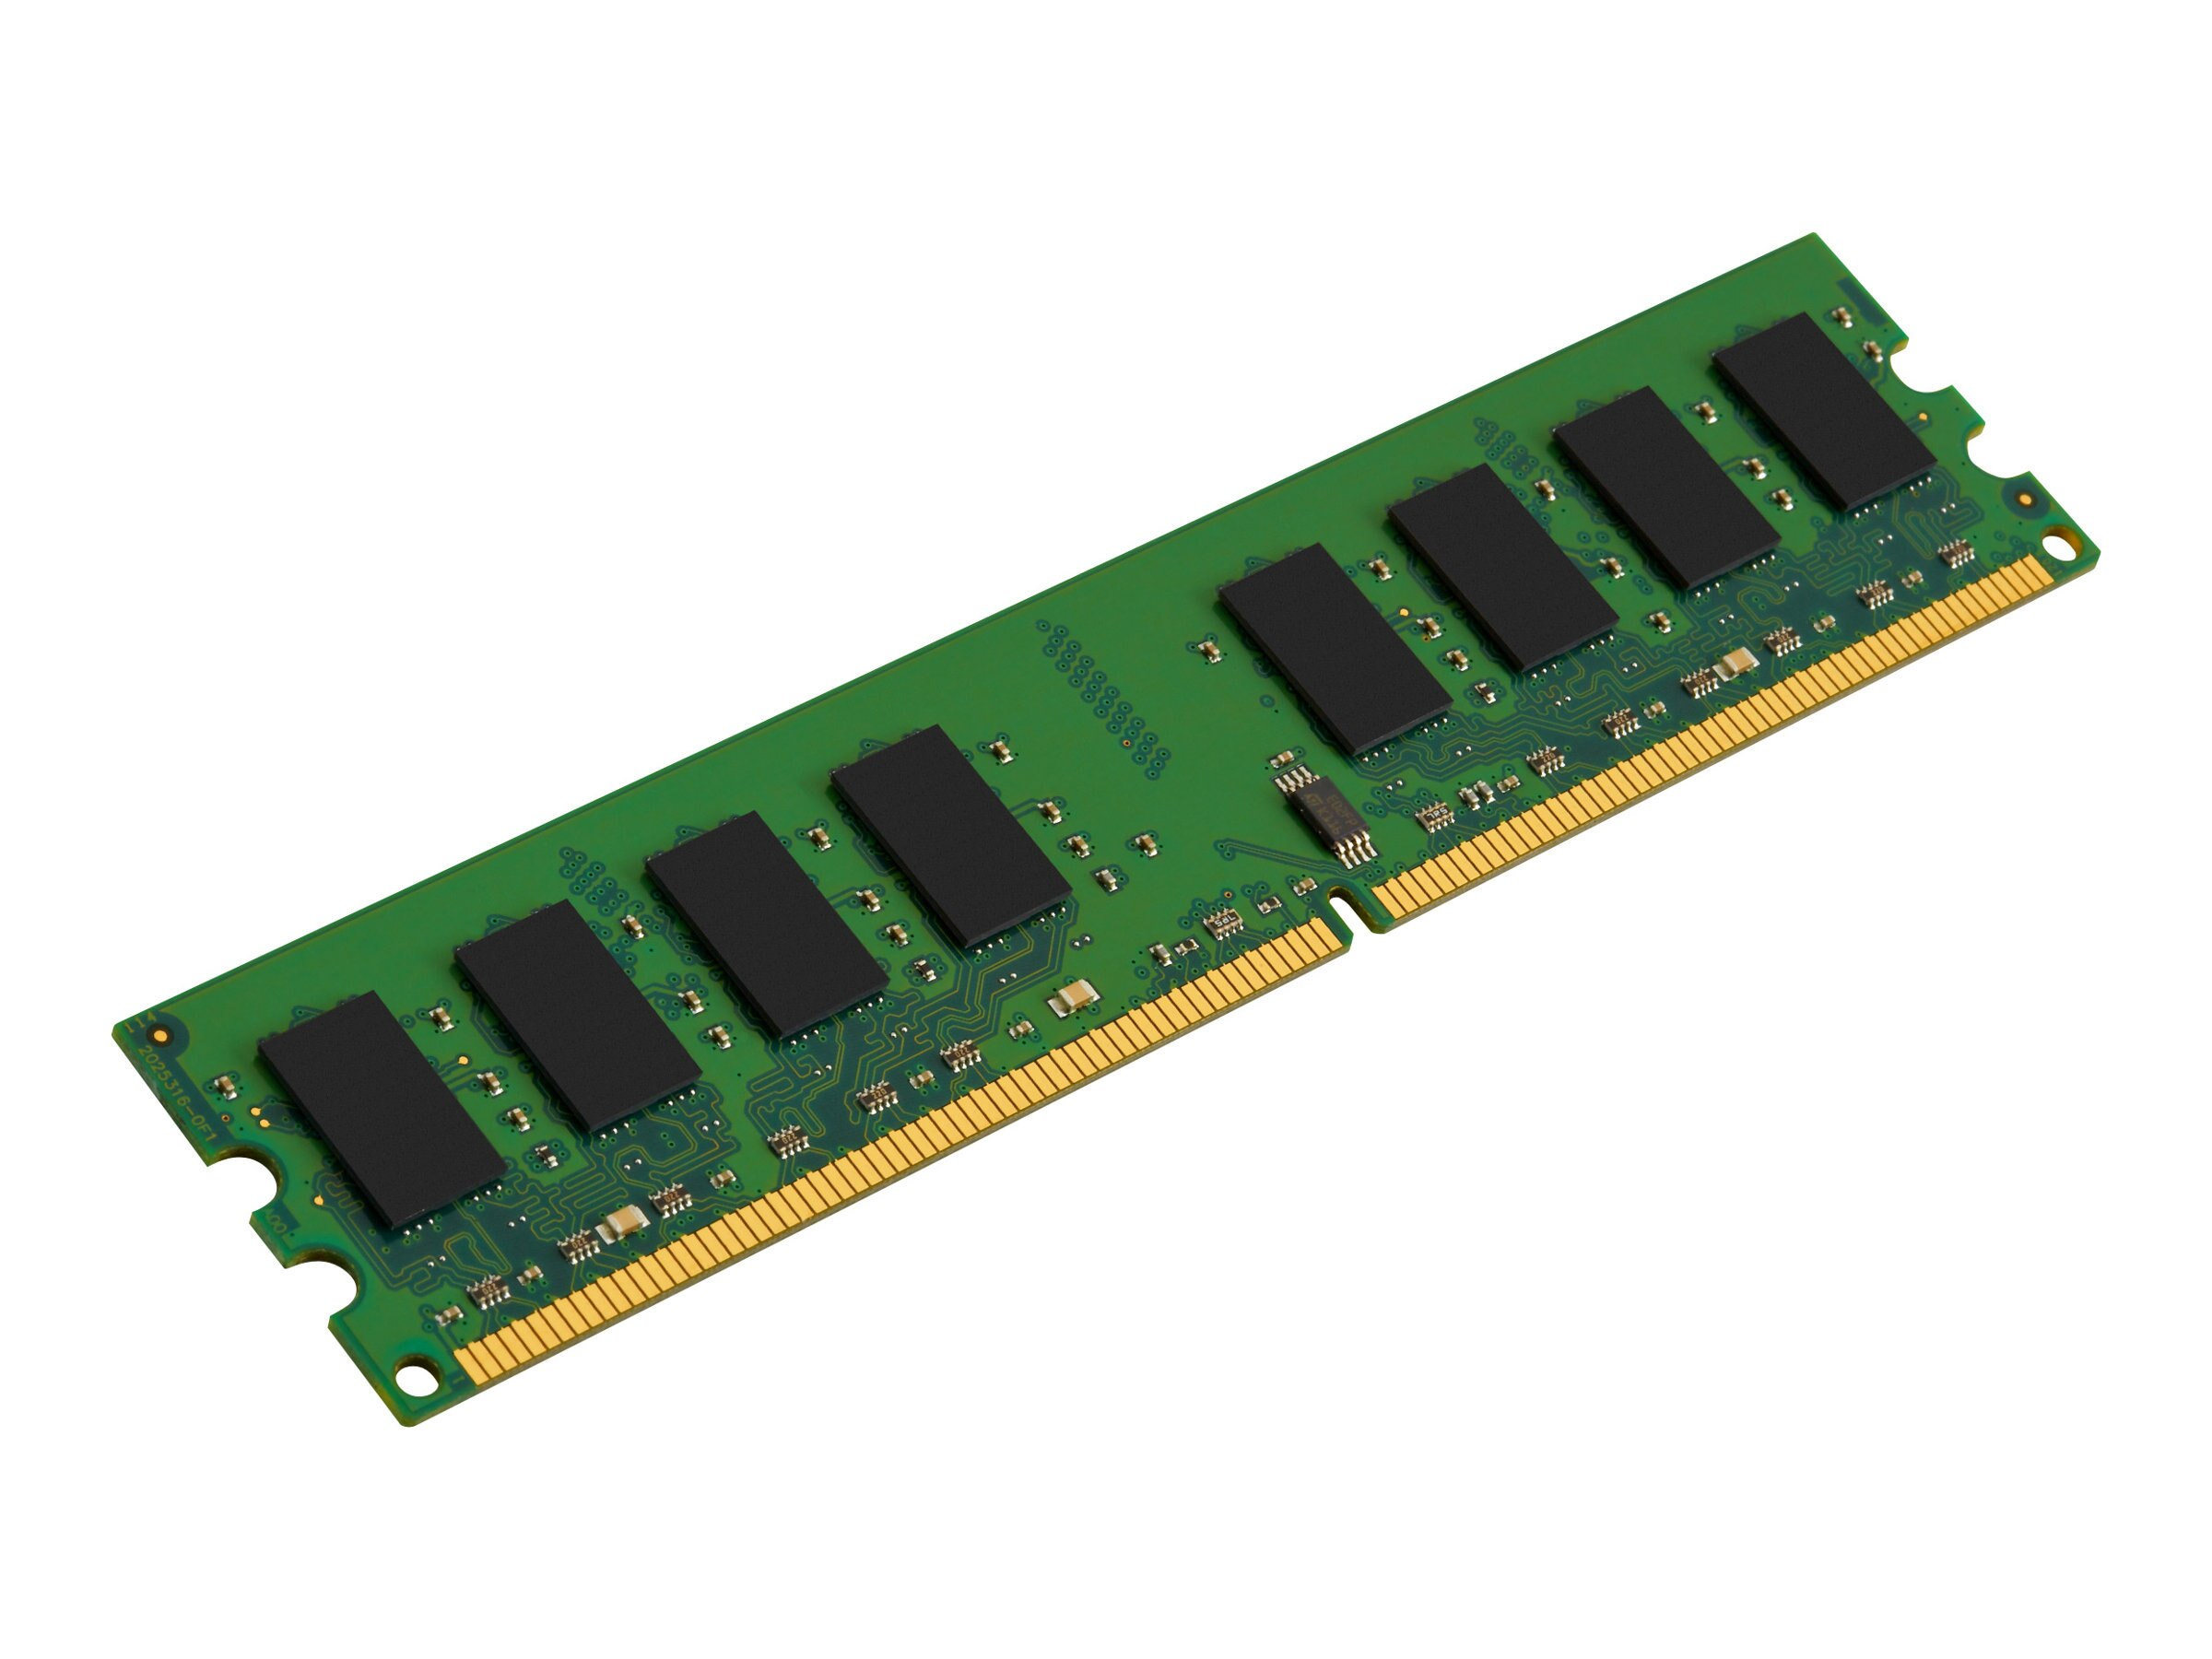 Kingston 2GB PC2-6400 240-pin DDR2 SDRAM UDIMM for Select Models, KTH-XW4400C6/2G